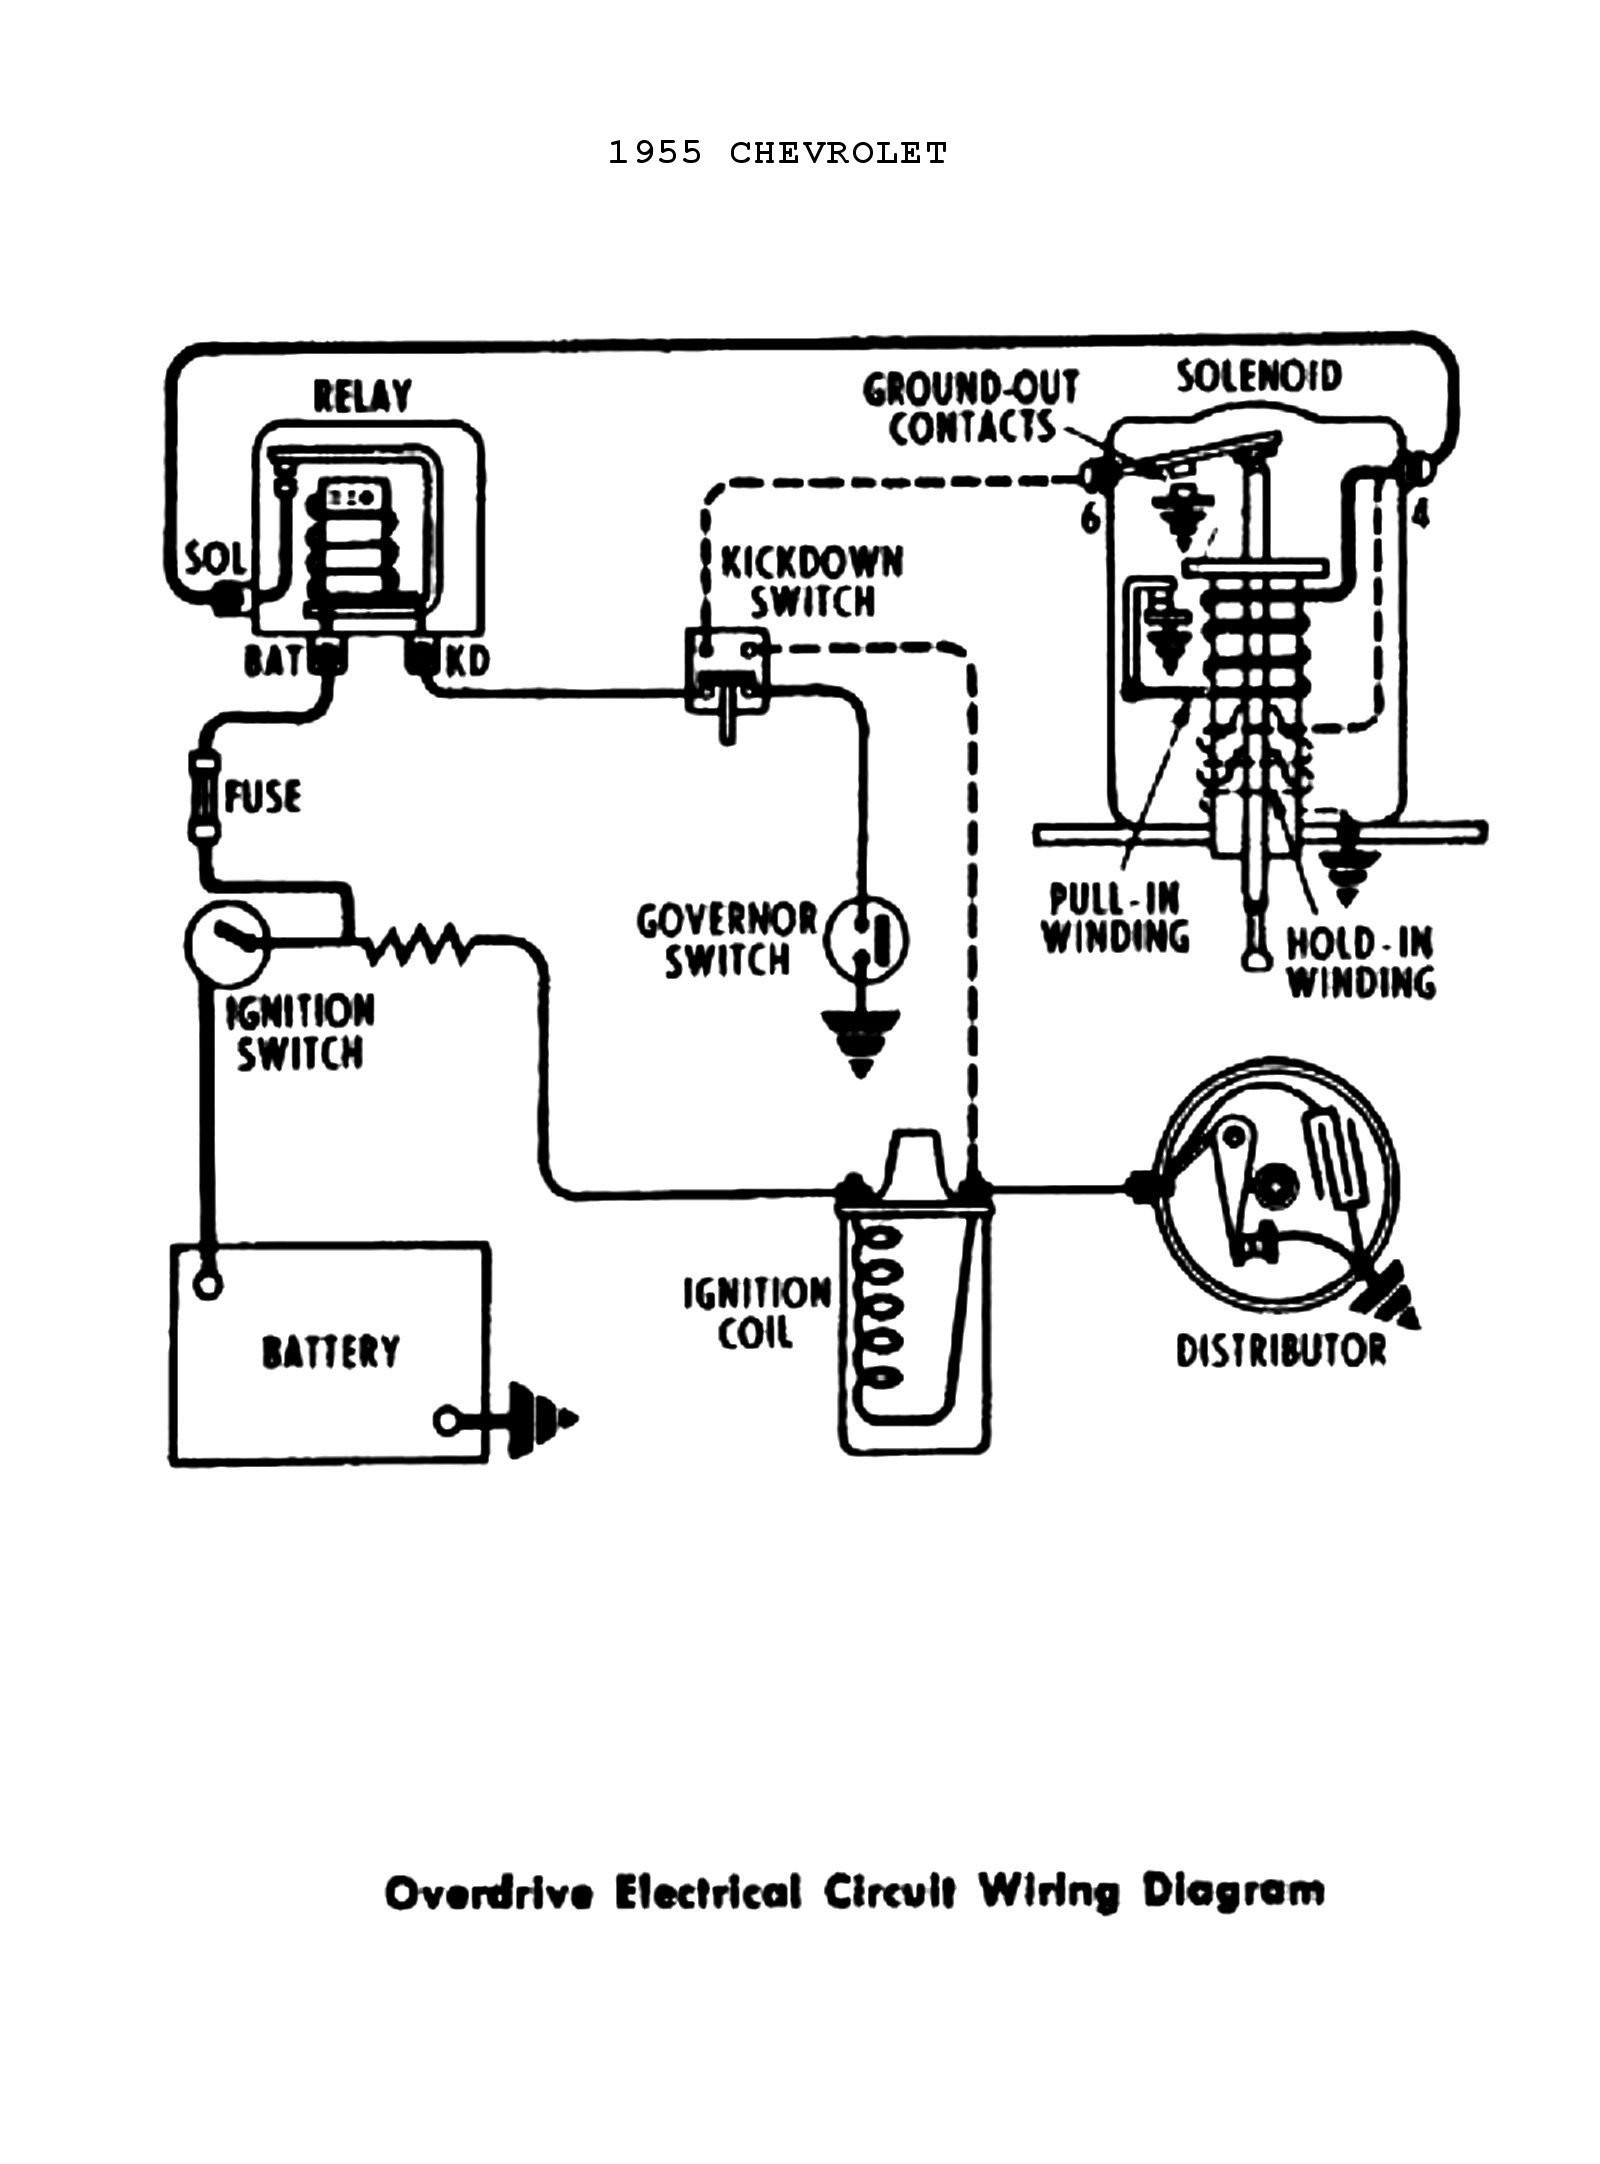 Wrg S10 Ignition Switch Wiring Diagram